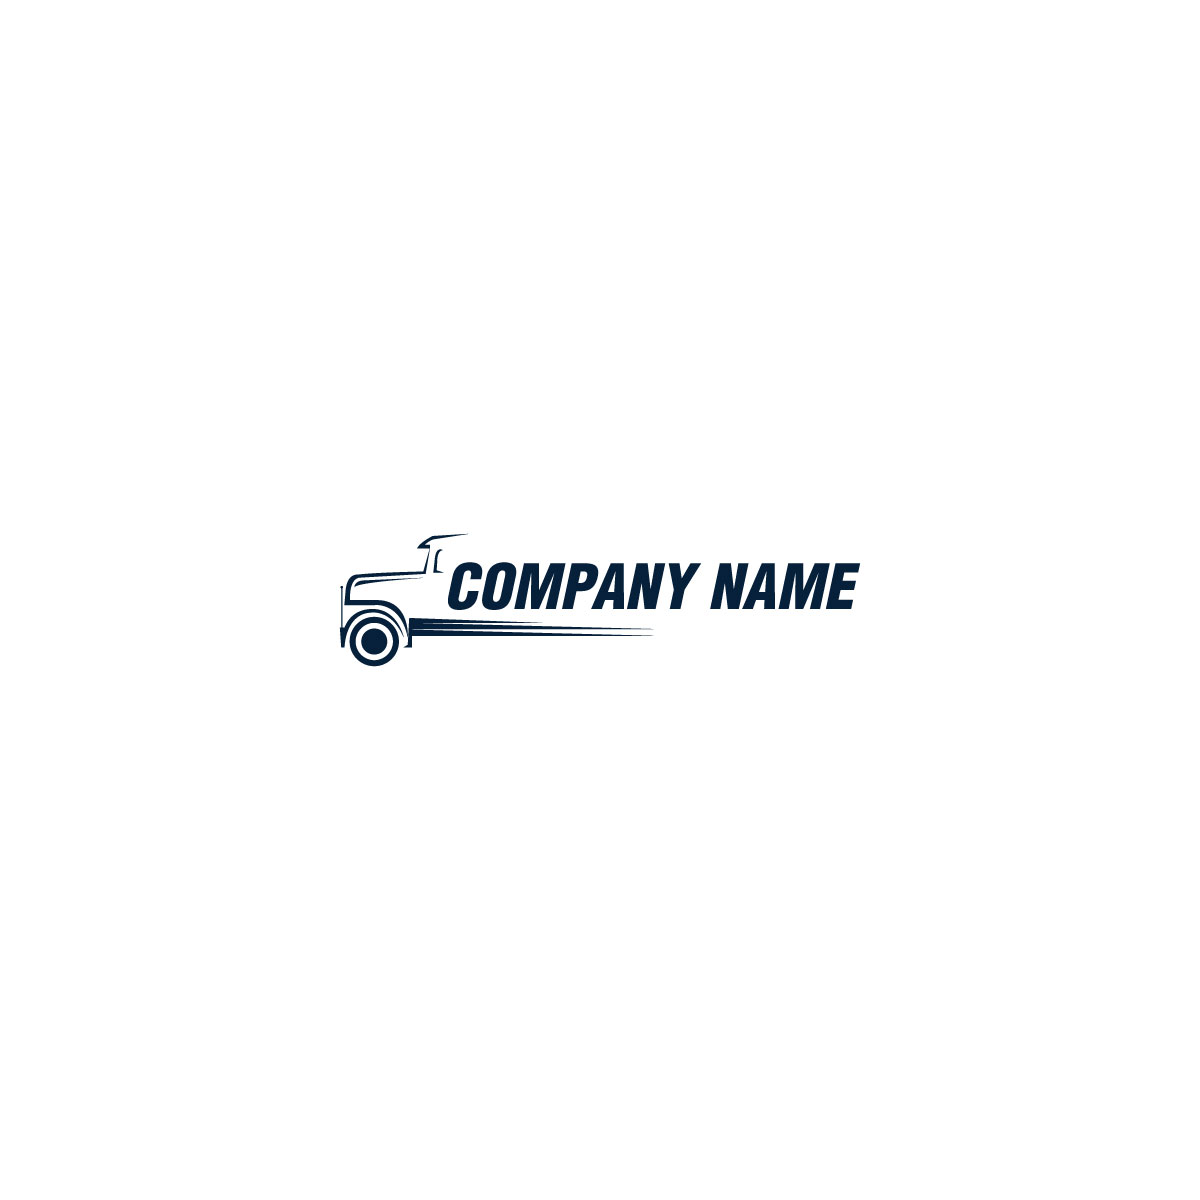 bold, serious, trucking company logo design for open to all ideas by